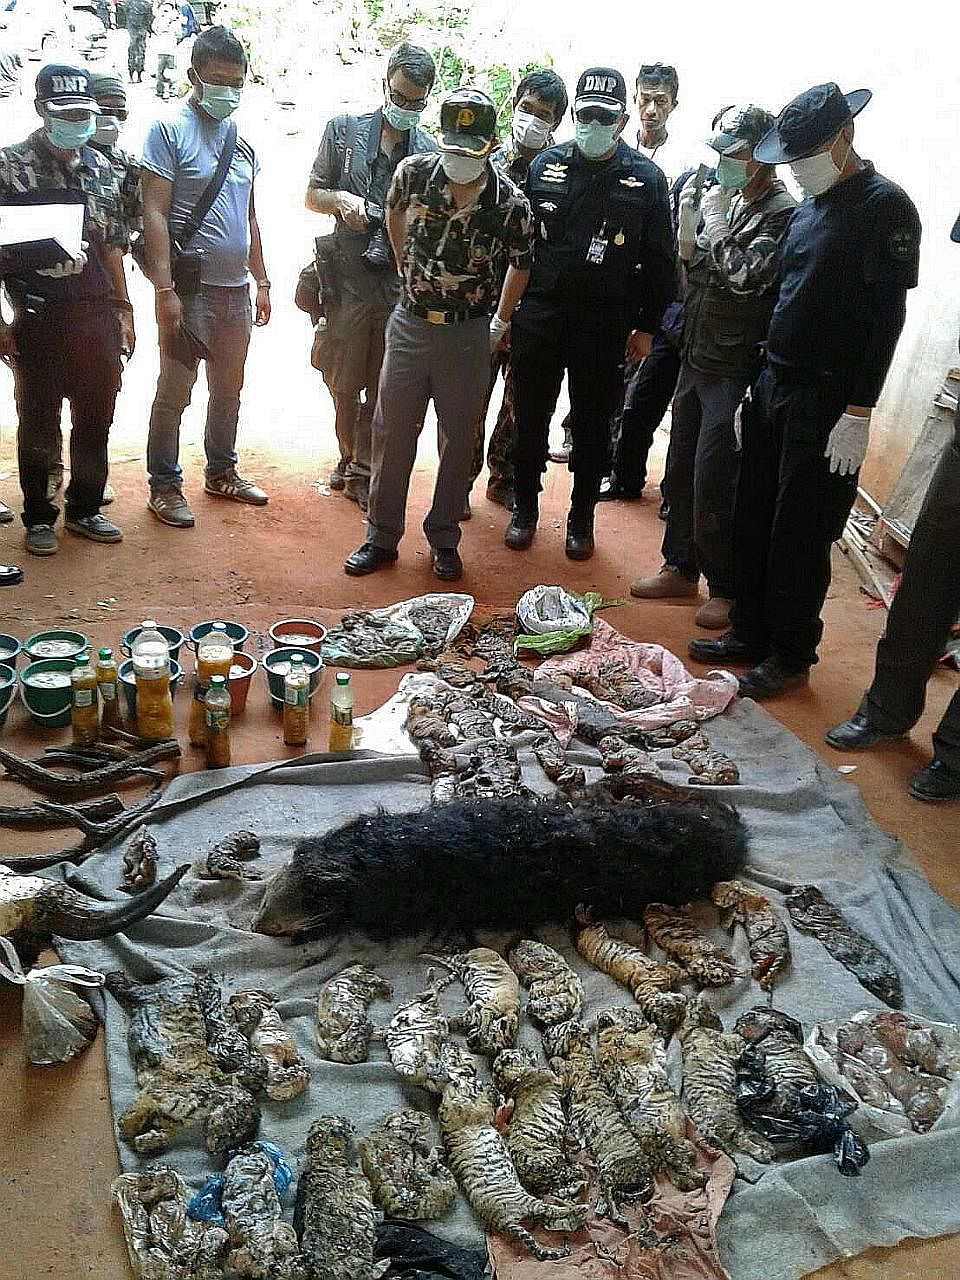 Thai Department of National Parks officers with carcasses of tiger cubs and bears. Glass jars containing baby tigers and tiger parts were found in the temple, reinforcing suspicions that it was making folk medicine.